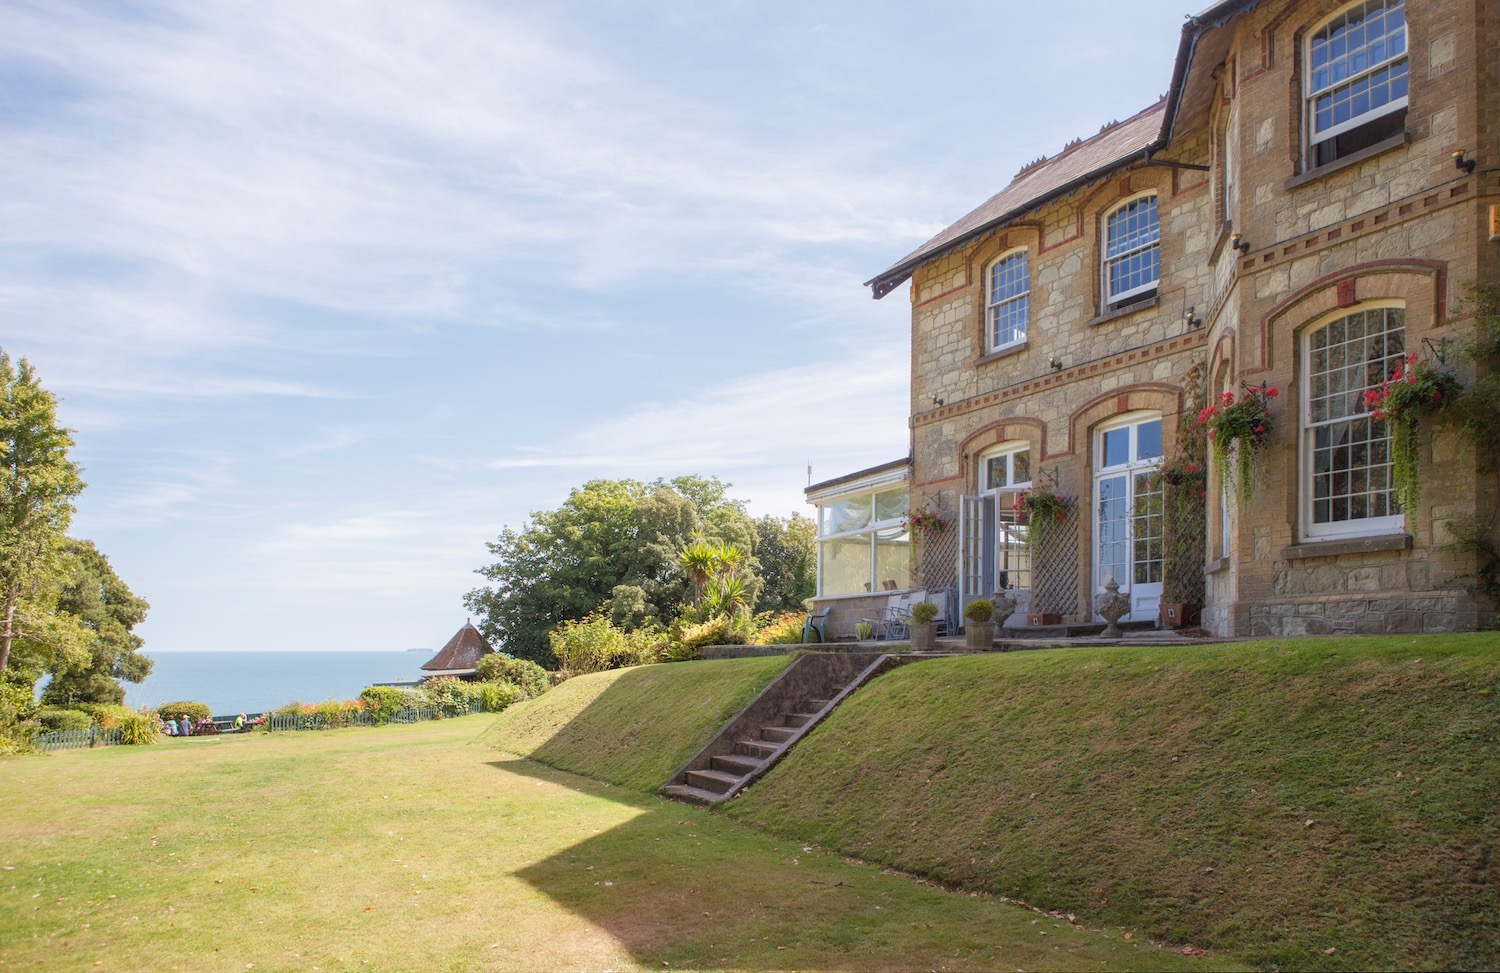 Ferry Incuslive 2nt Offer from £179 for 2, Luccombe Manor Country House Hotel, Isle of Wight